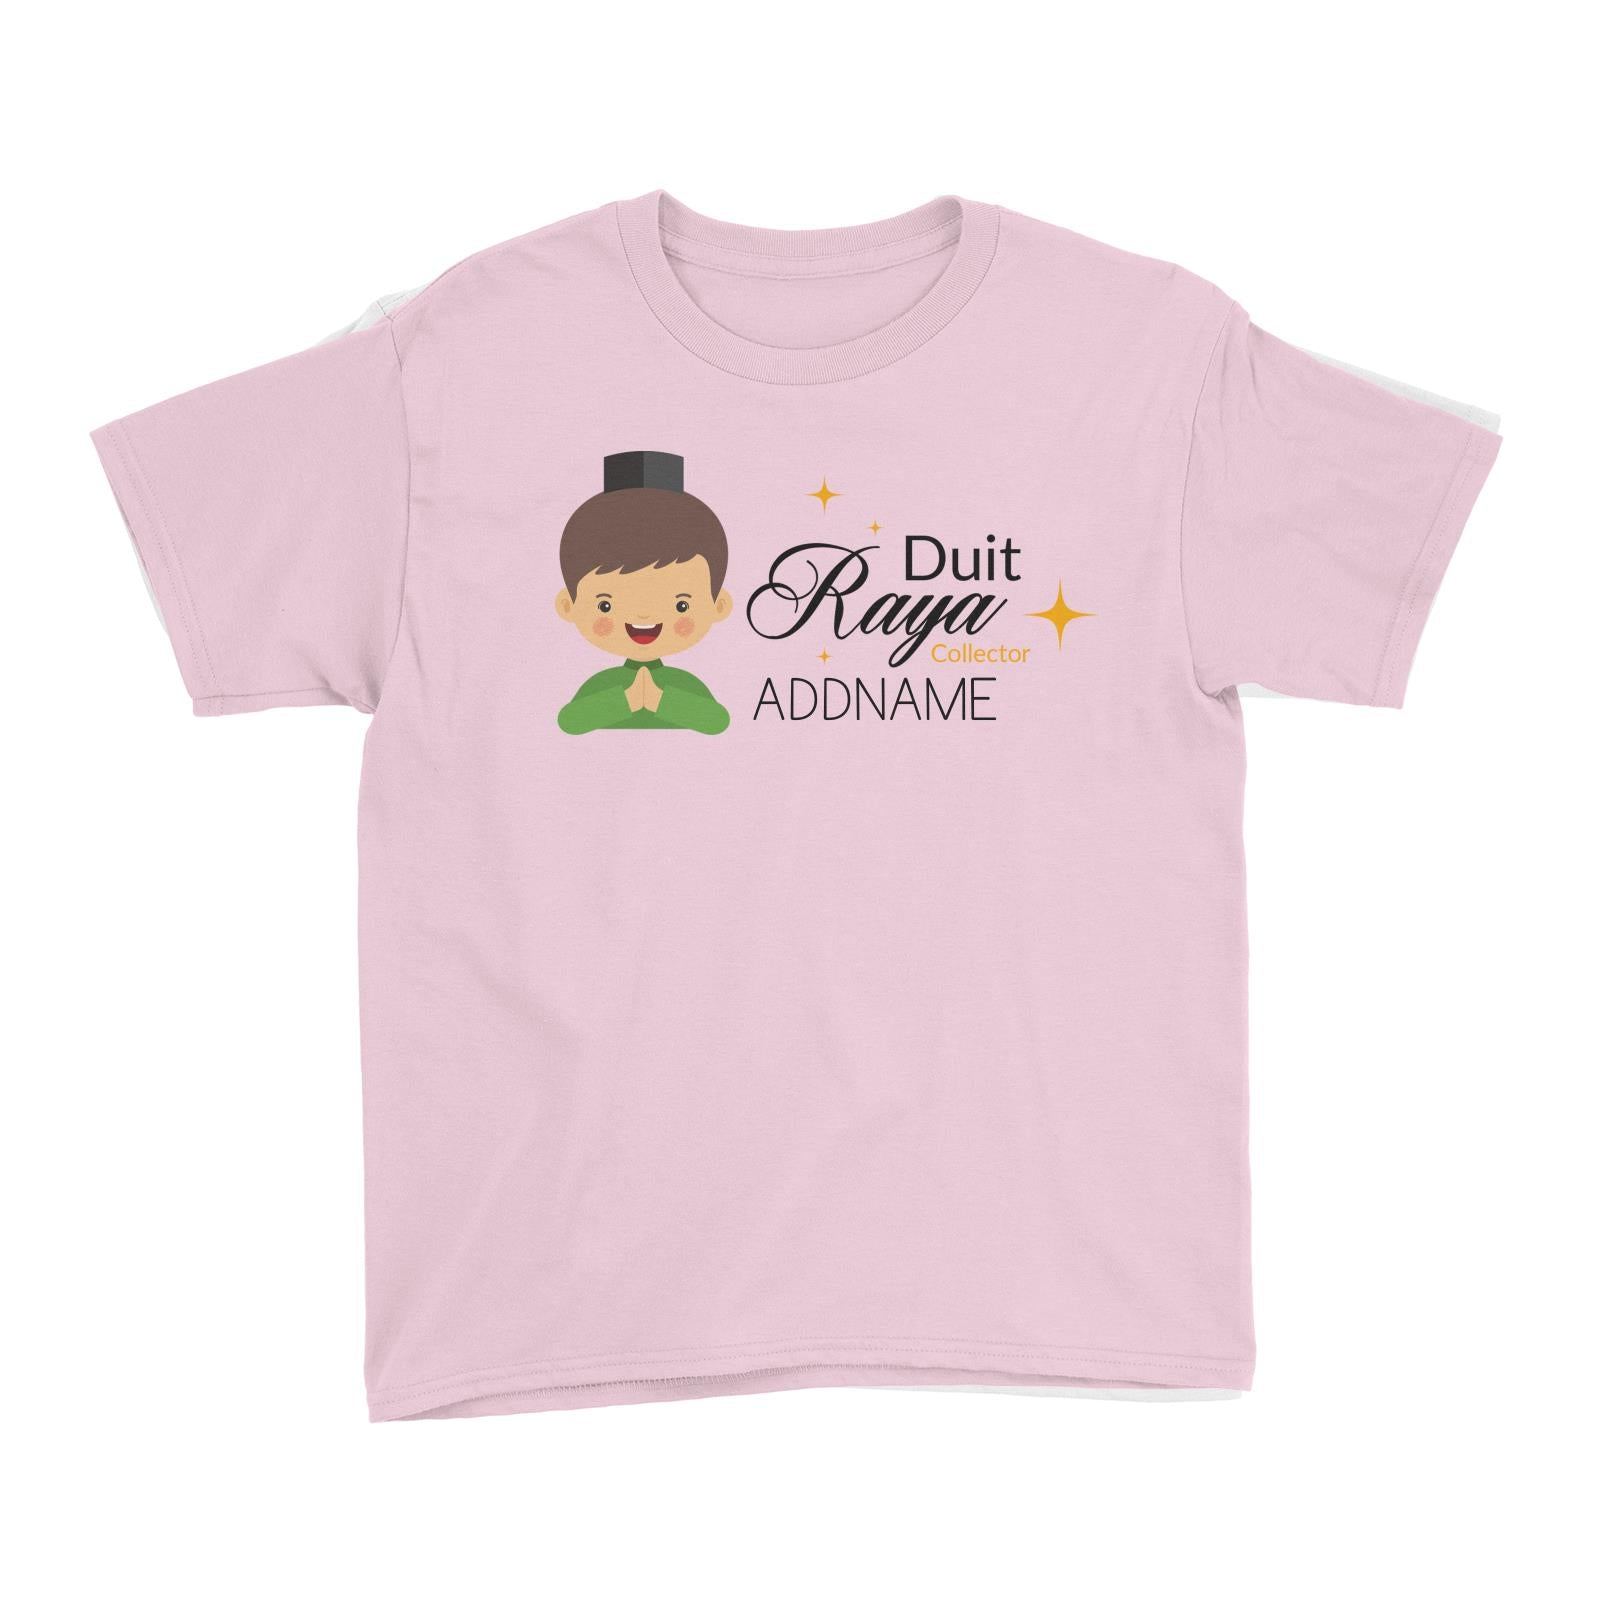 Duit Raya Collector Man Kid's T-Shirt  Personalizable Designs Sweet Character